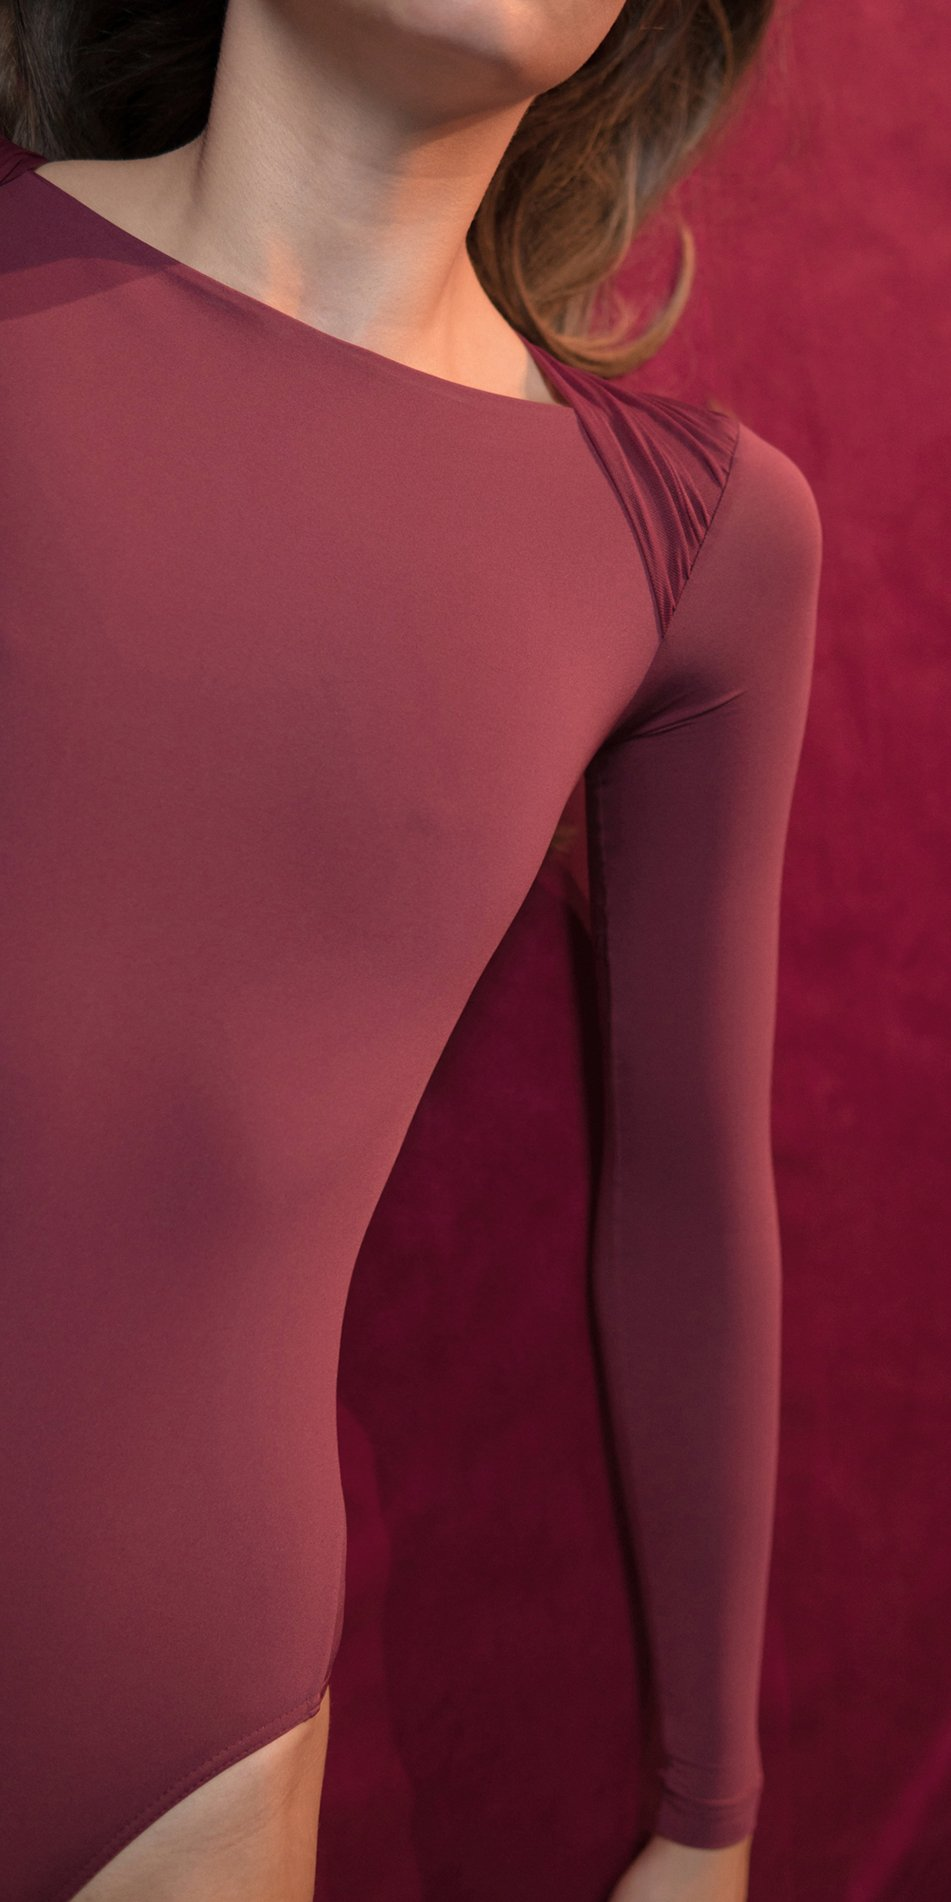 GRES red knotted nude leotard with sleeves 4